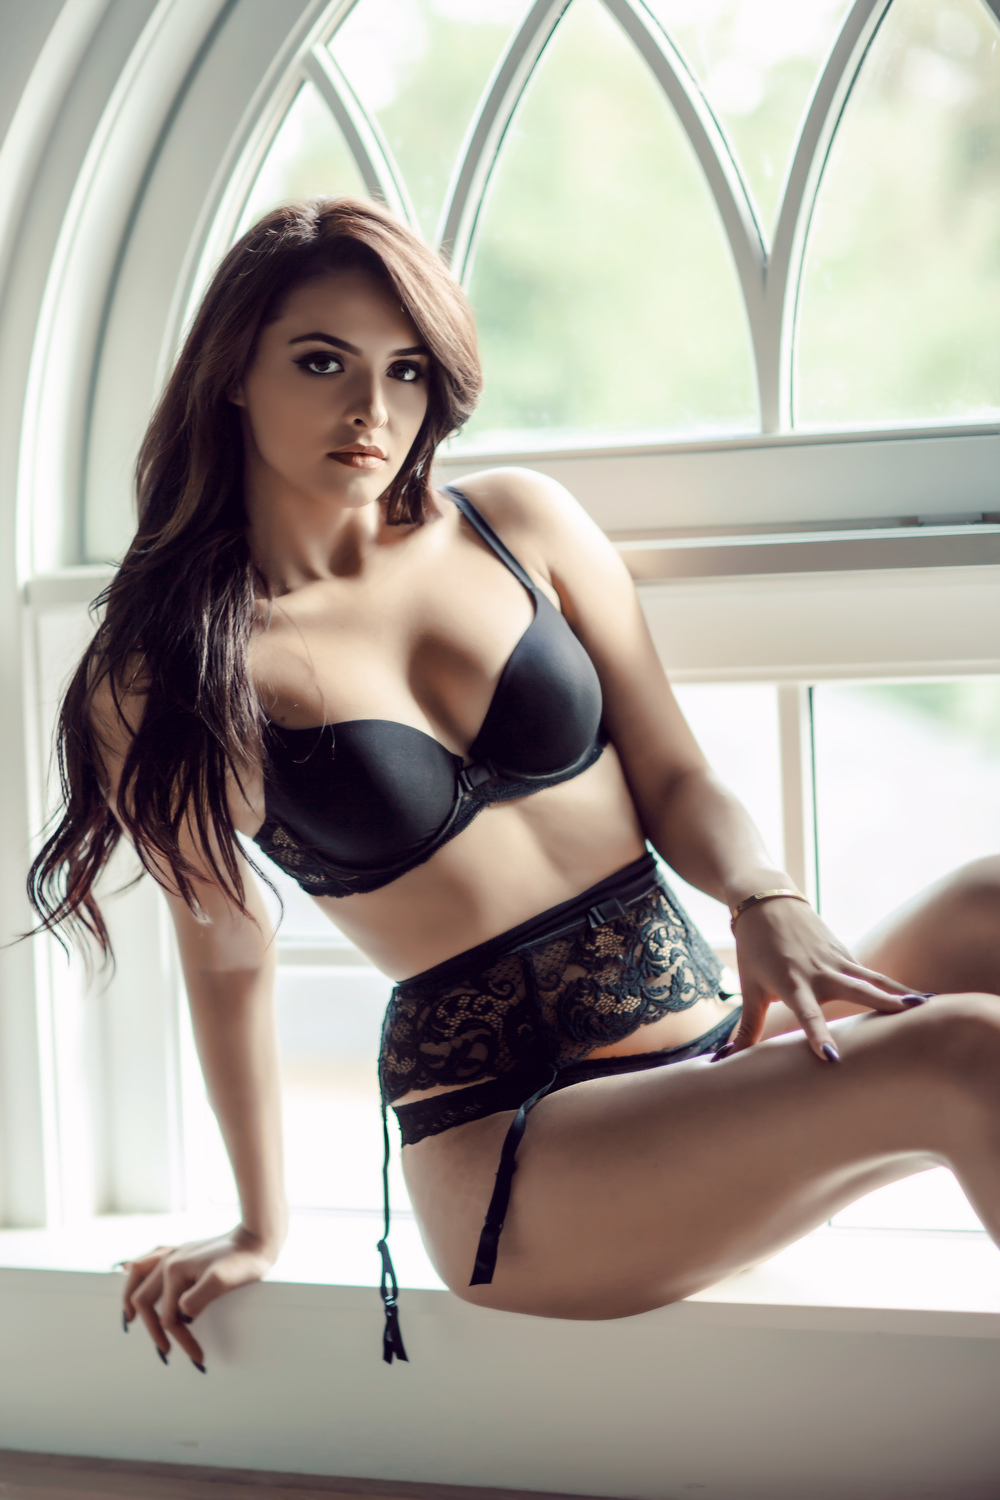 1066c2be9 Hooked on black lingerie  Our soft and romantic studio setting allows a  beautifully feminine